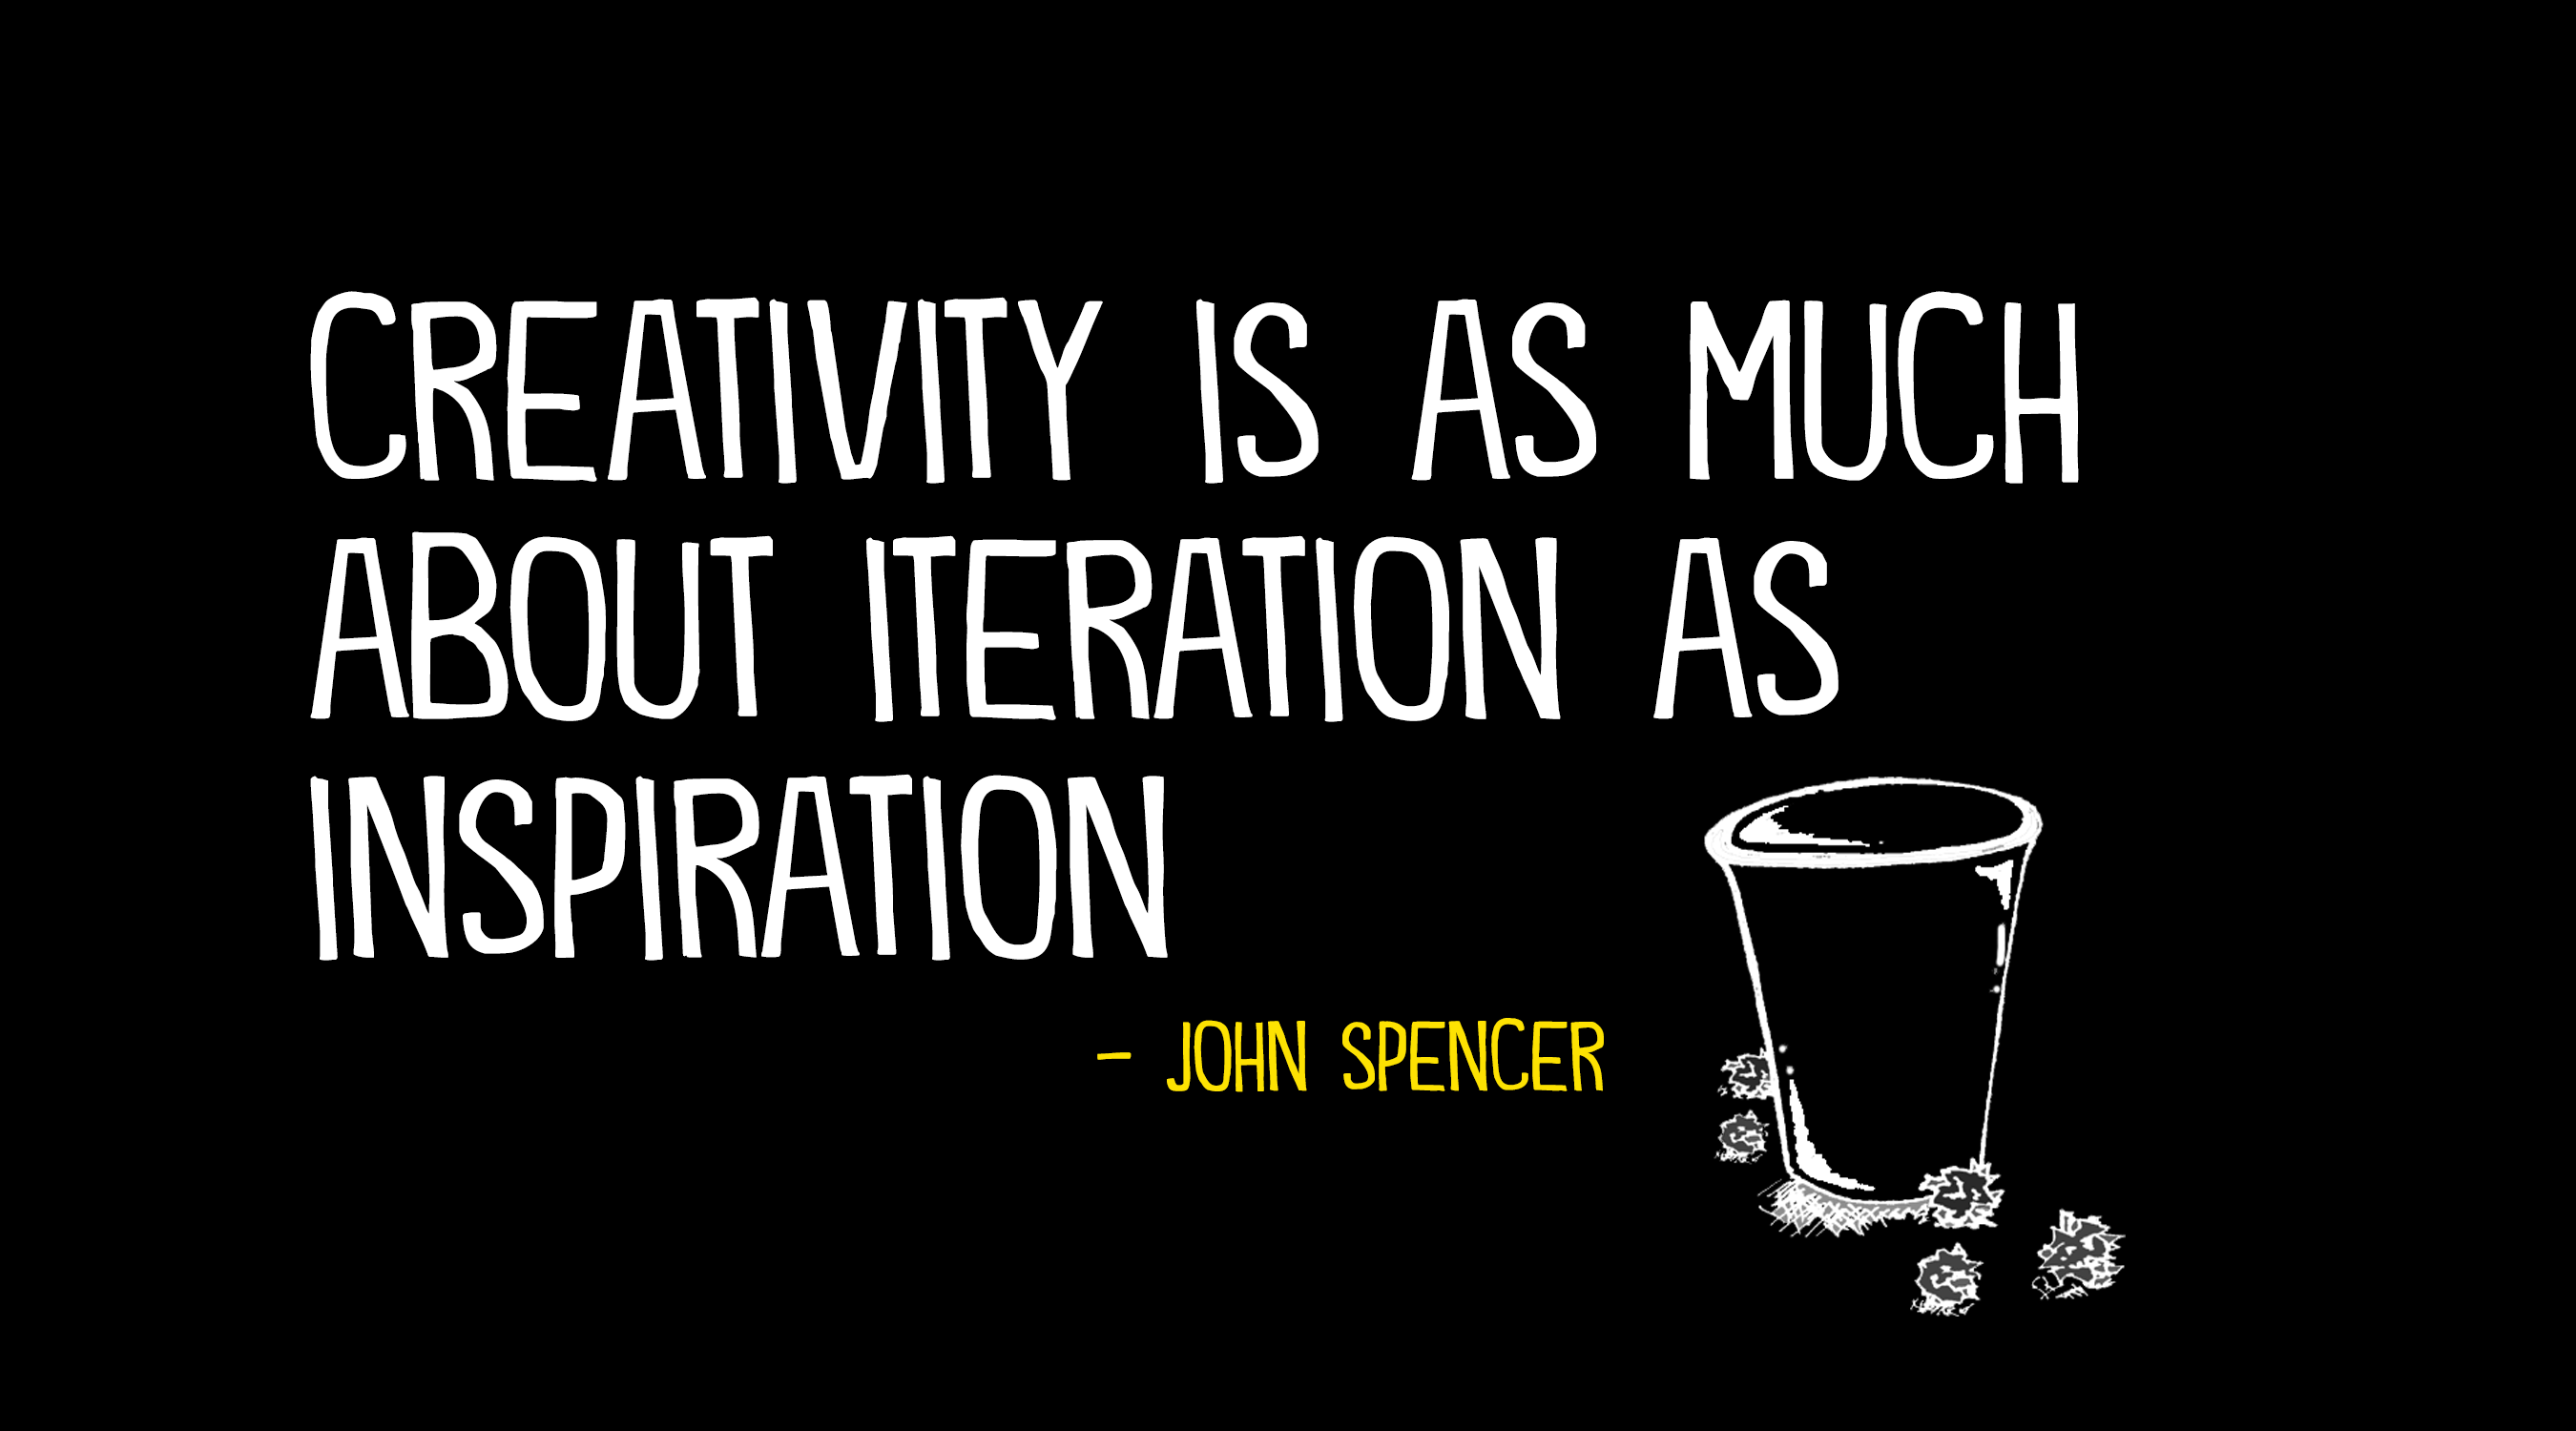 Creativity quote: Creativity is as much as iteration as inspiration.